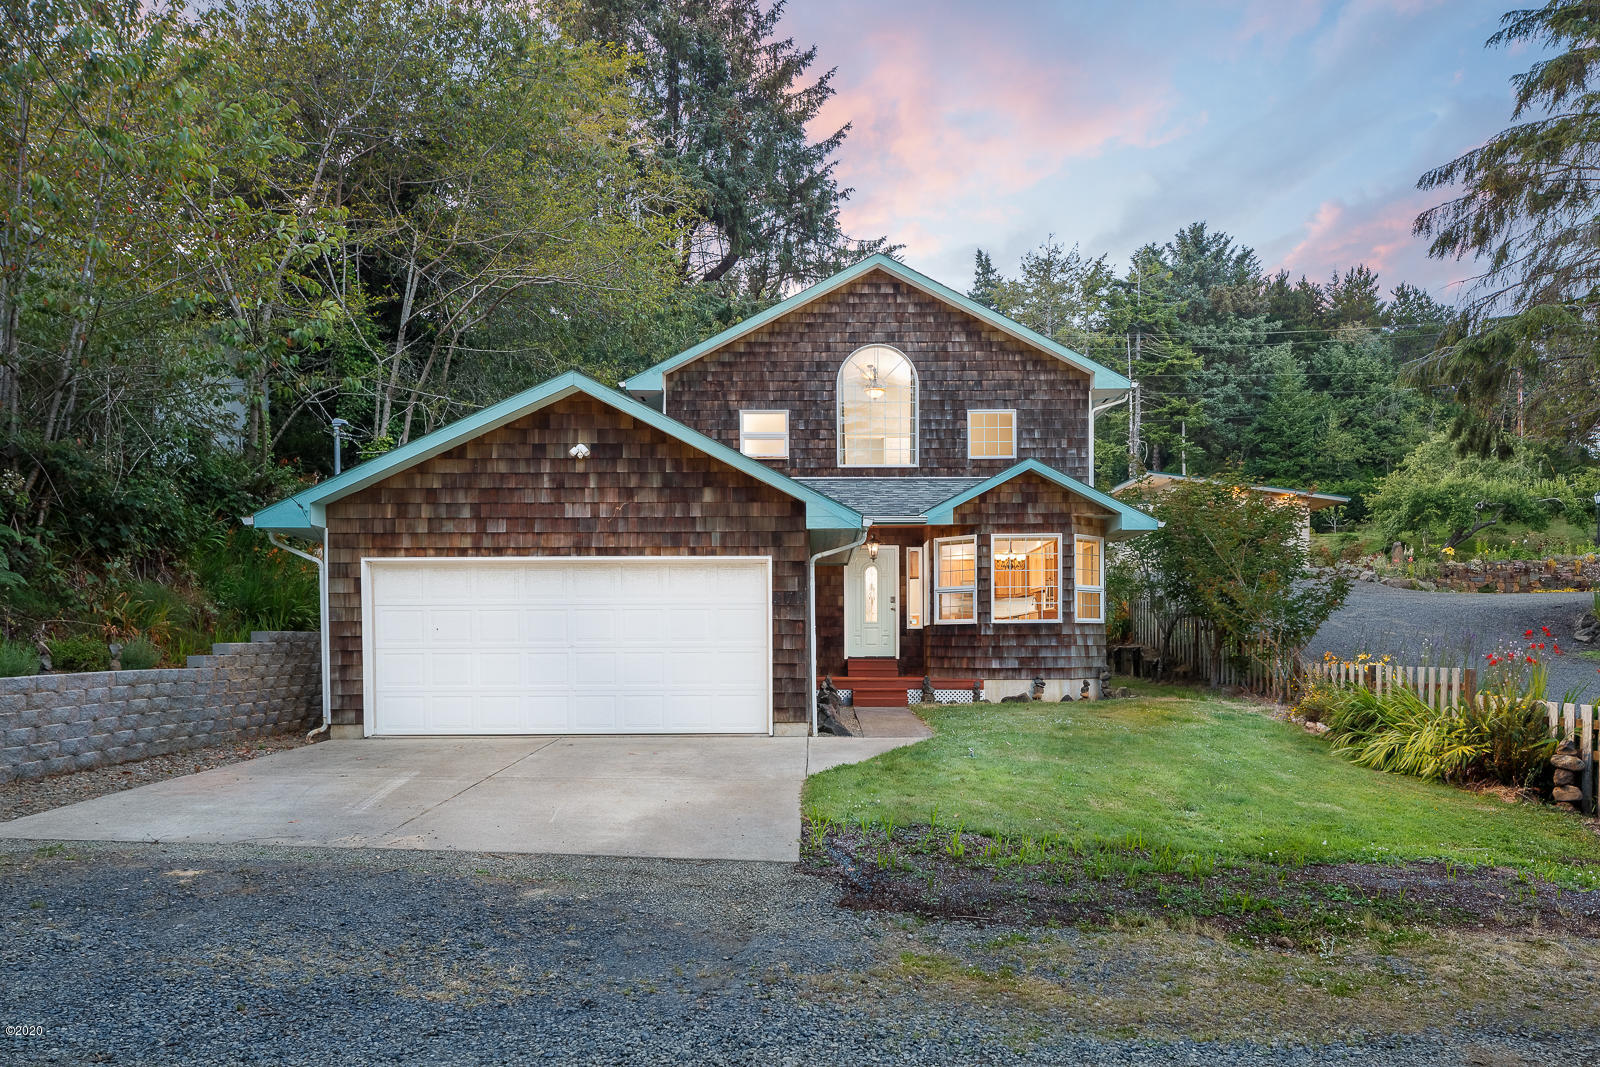 275 NE 53rd St, Newport, OR 97365